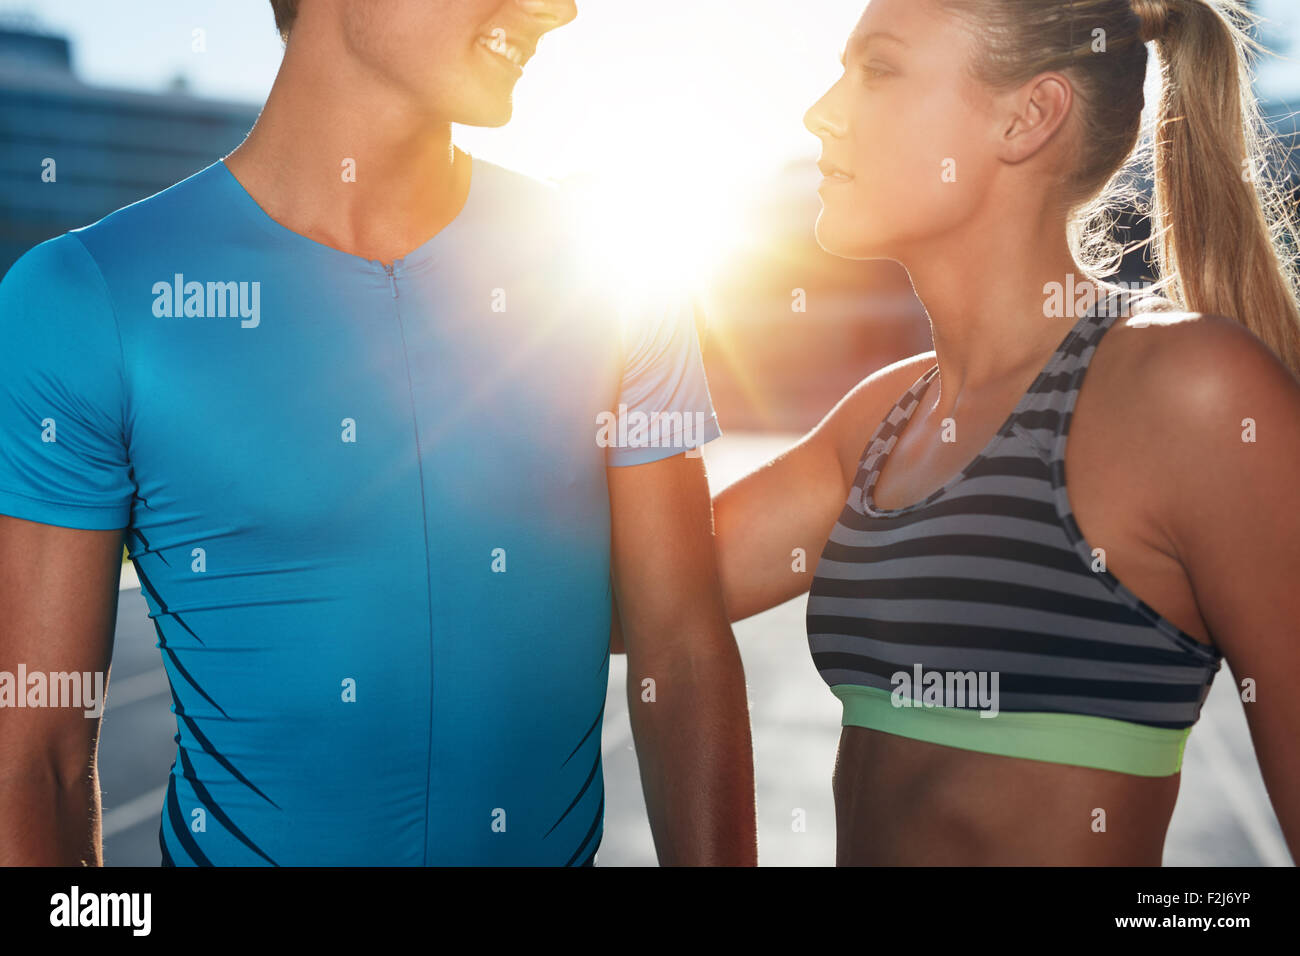 Closeup shot of two young athletes standing on stadium race track on a bright sunny day. Man and woman in sports - Stock Image